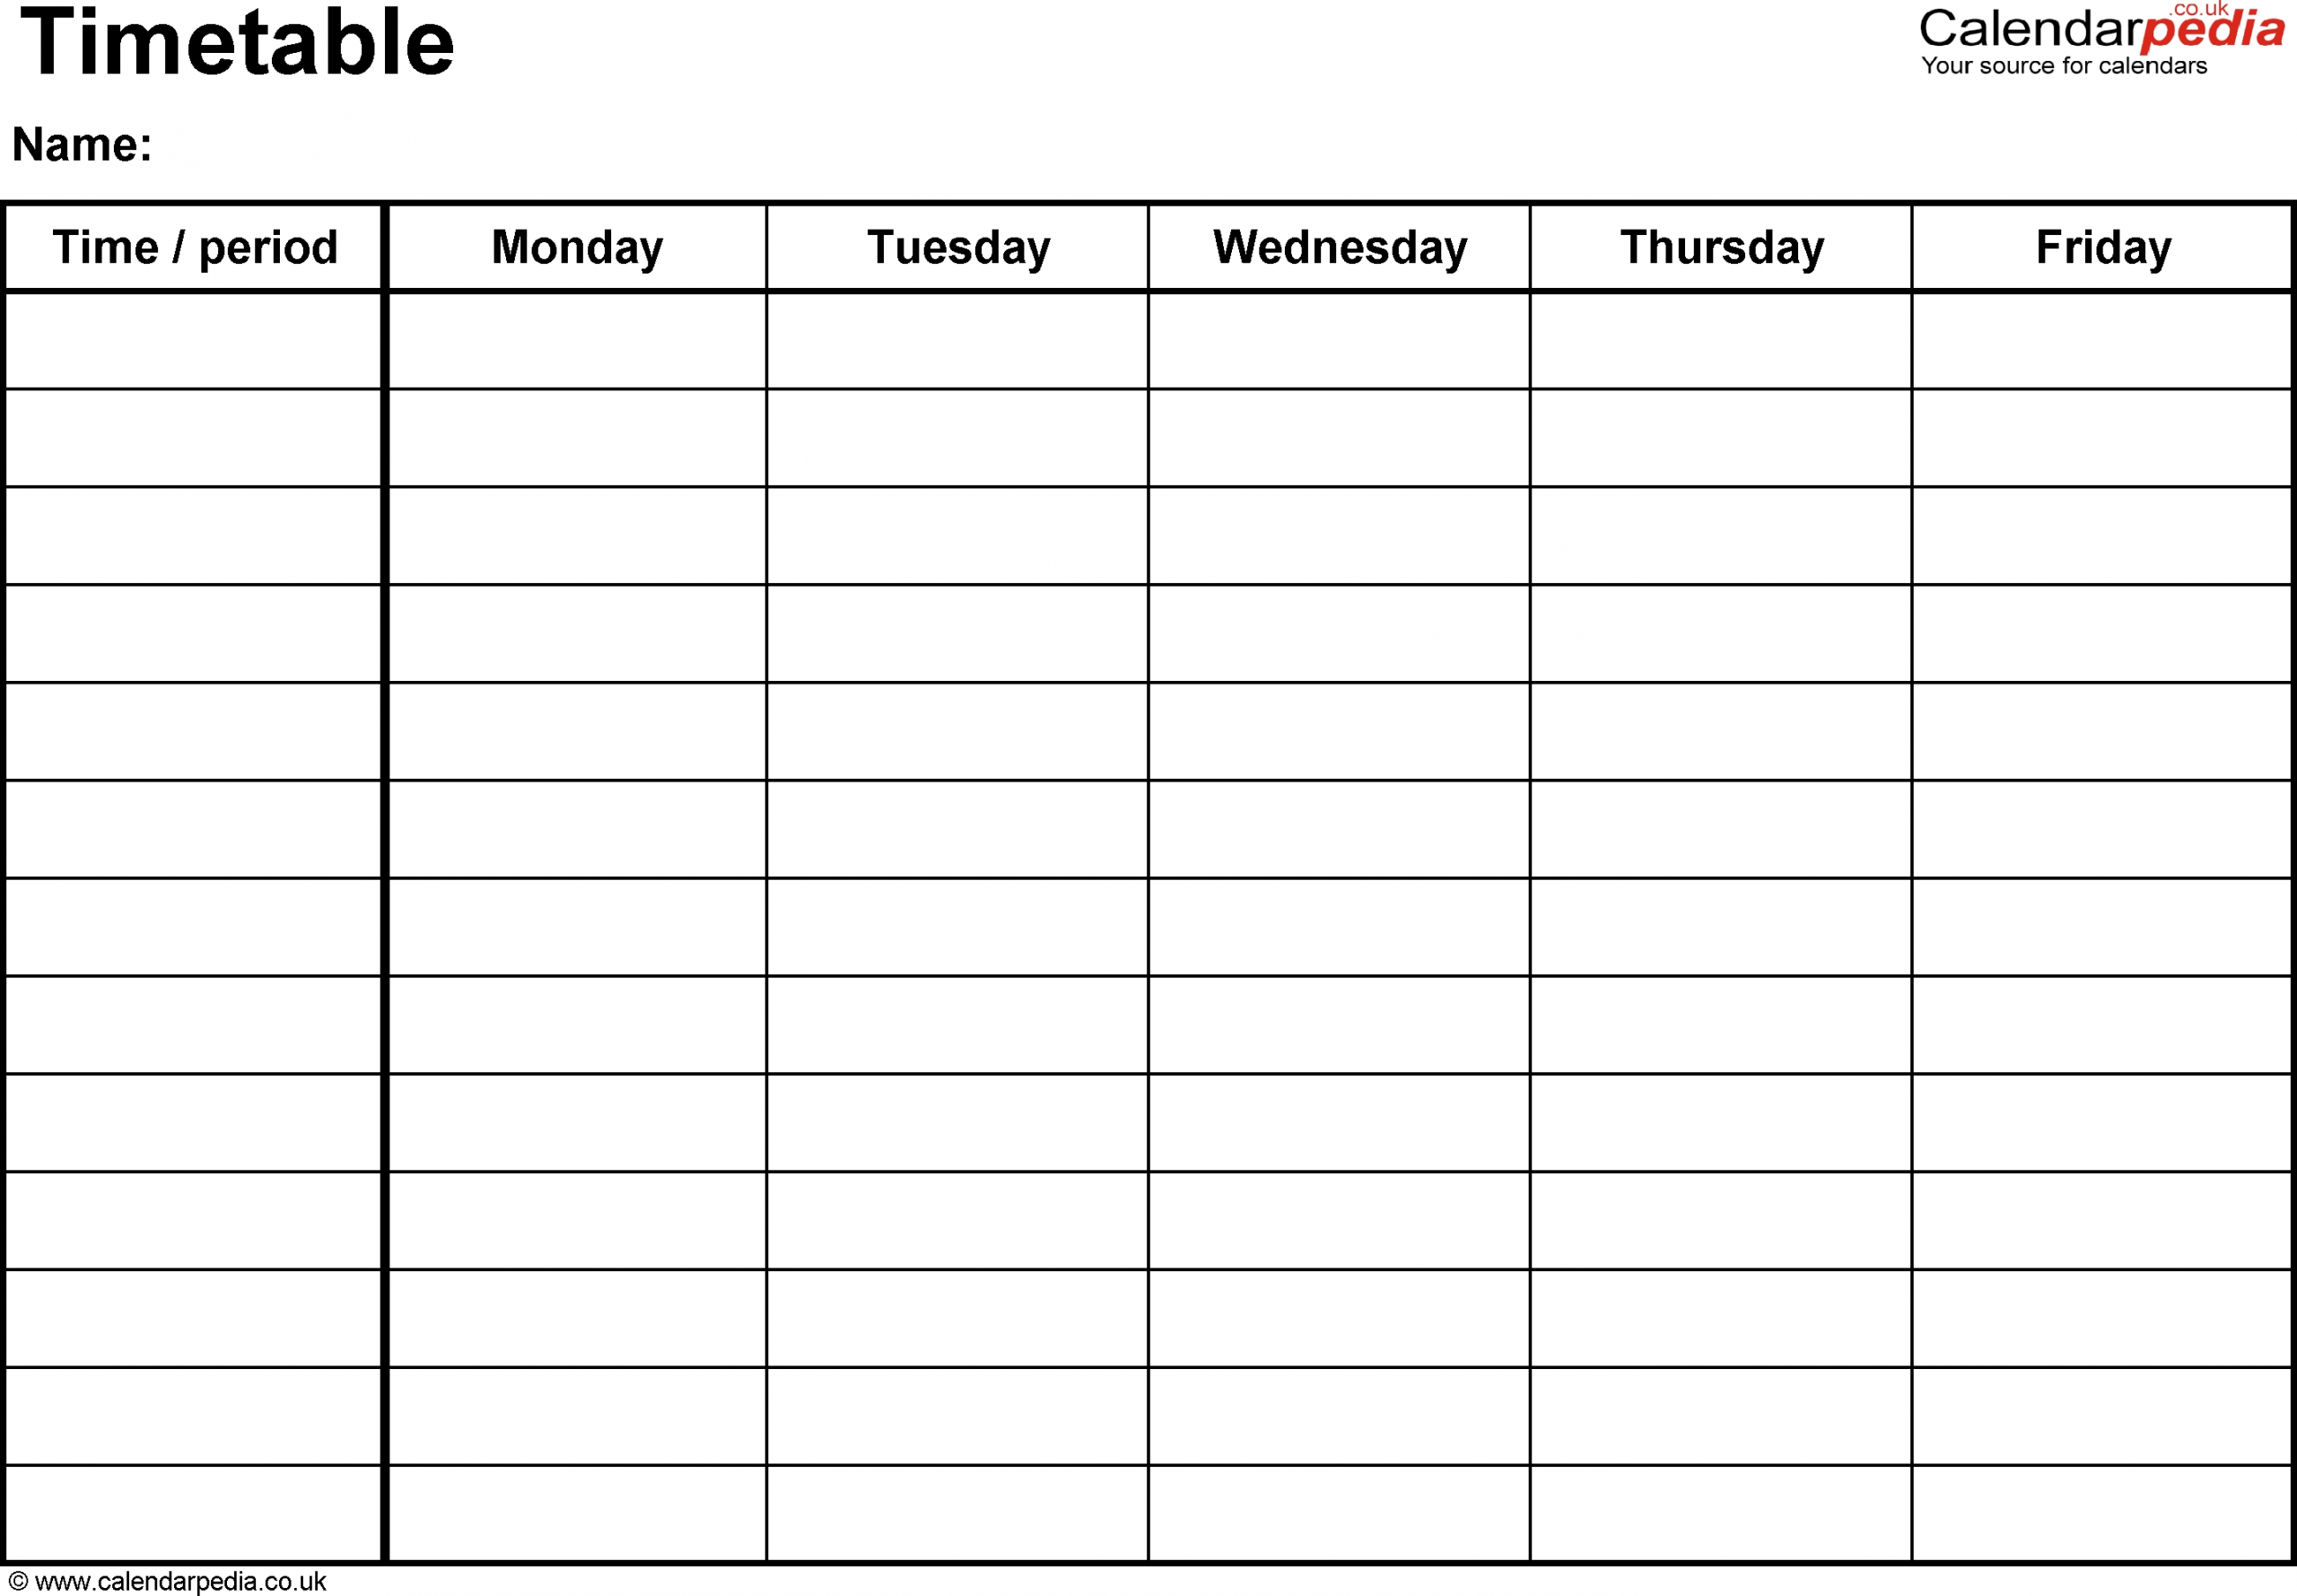 30 Day Calendar With Circle With A Line Thru It - Calendar Blank 30-Day Calender Printable